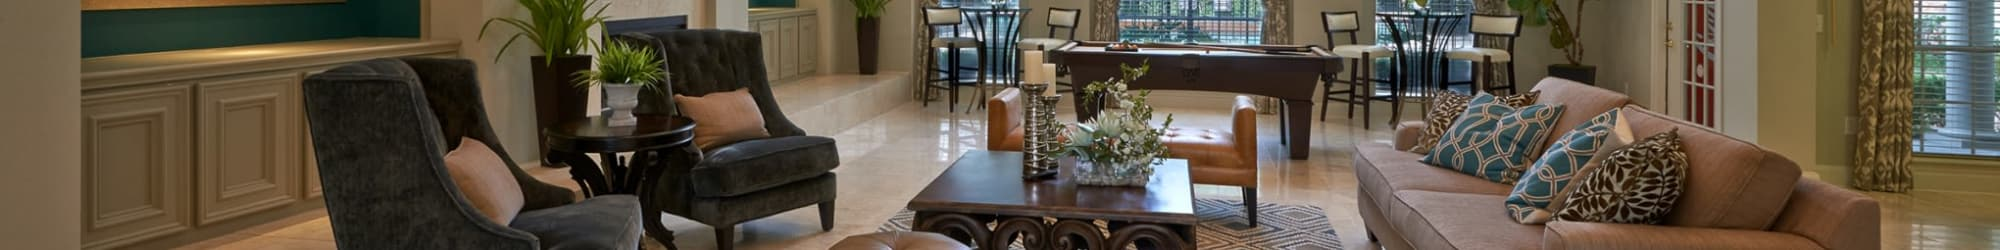 Schedule a tour of Preserve at Cypress Creek